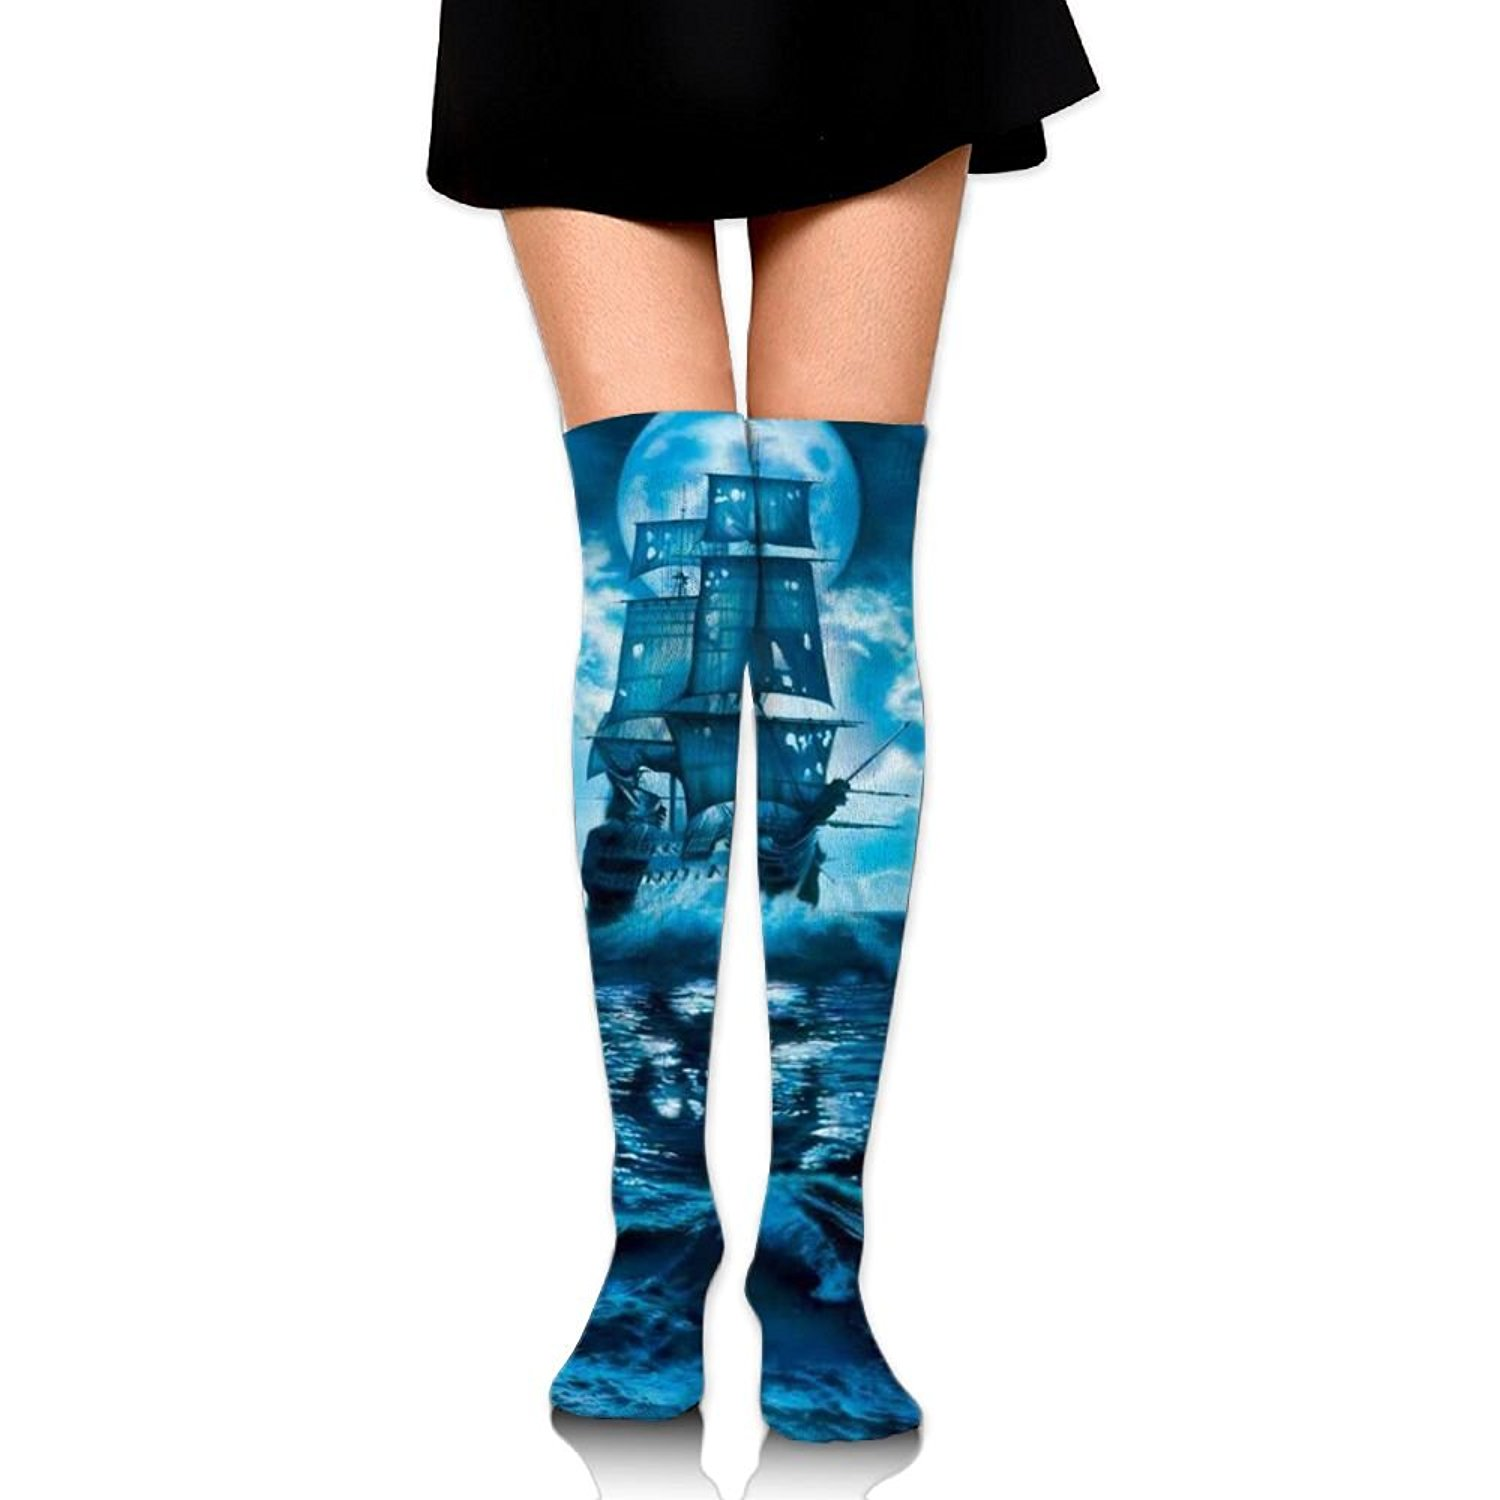 Zaqxsw Ghost Ship Women Unique Thigh High Socks Thermal Socks For Ladies